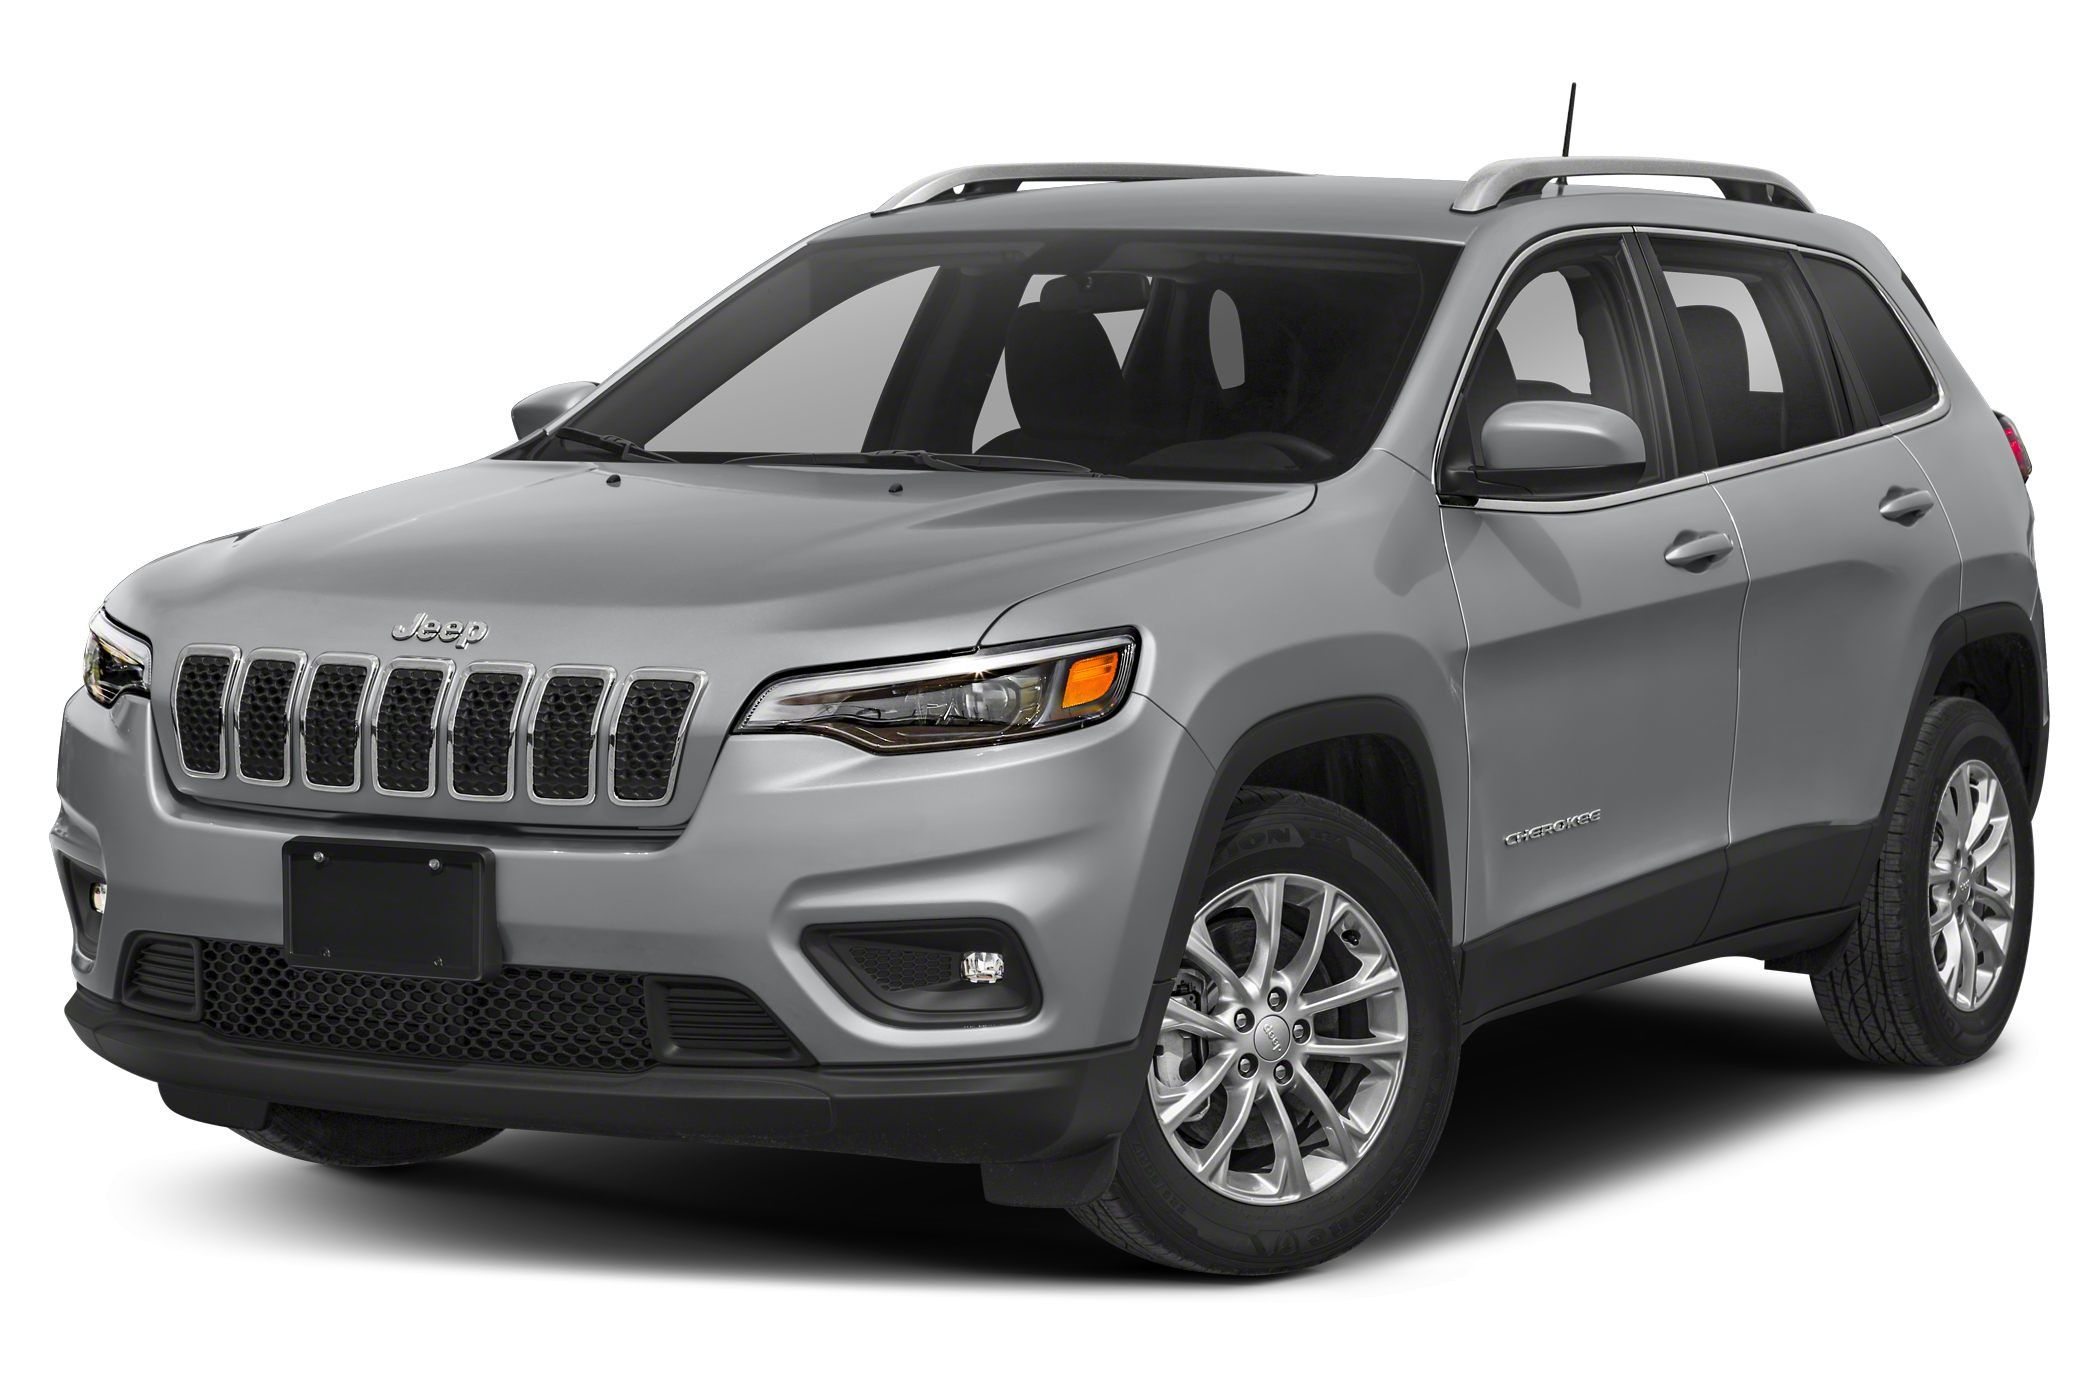 2019 Jeep Cherokee Mpg Check More At Http Www Autocar1 Club 2019 05 31 2019 Jeep Cherokee Mpg Jeep Cherokee Jeep